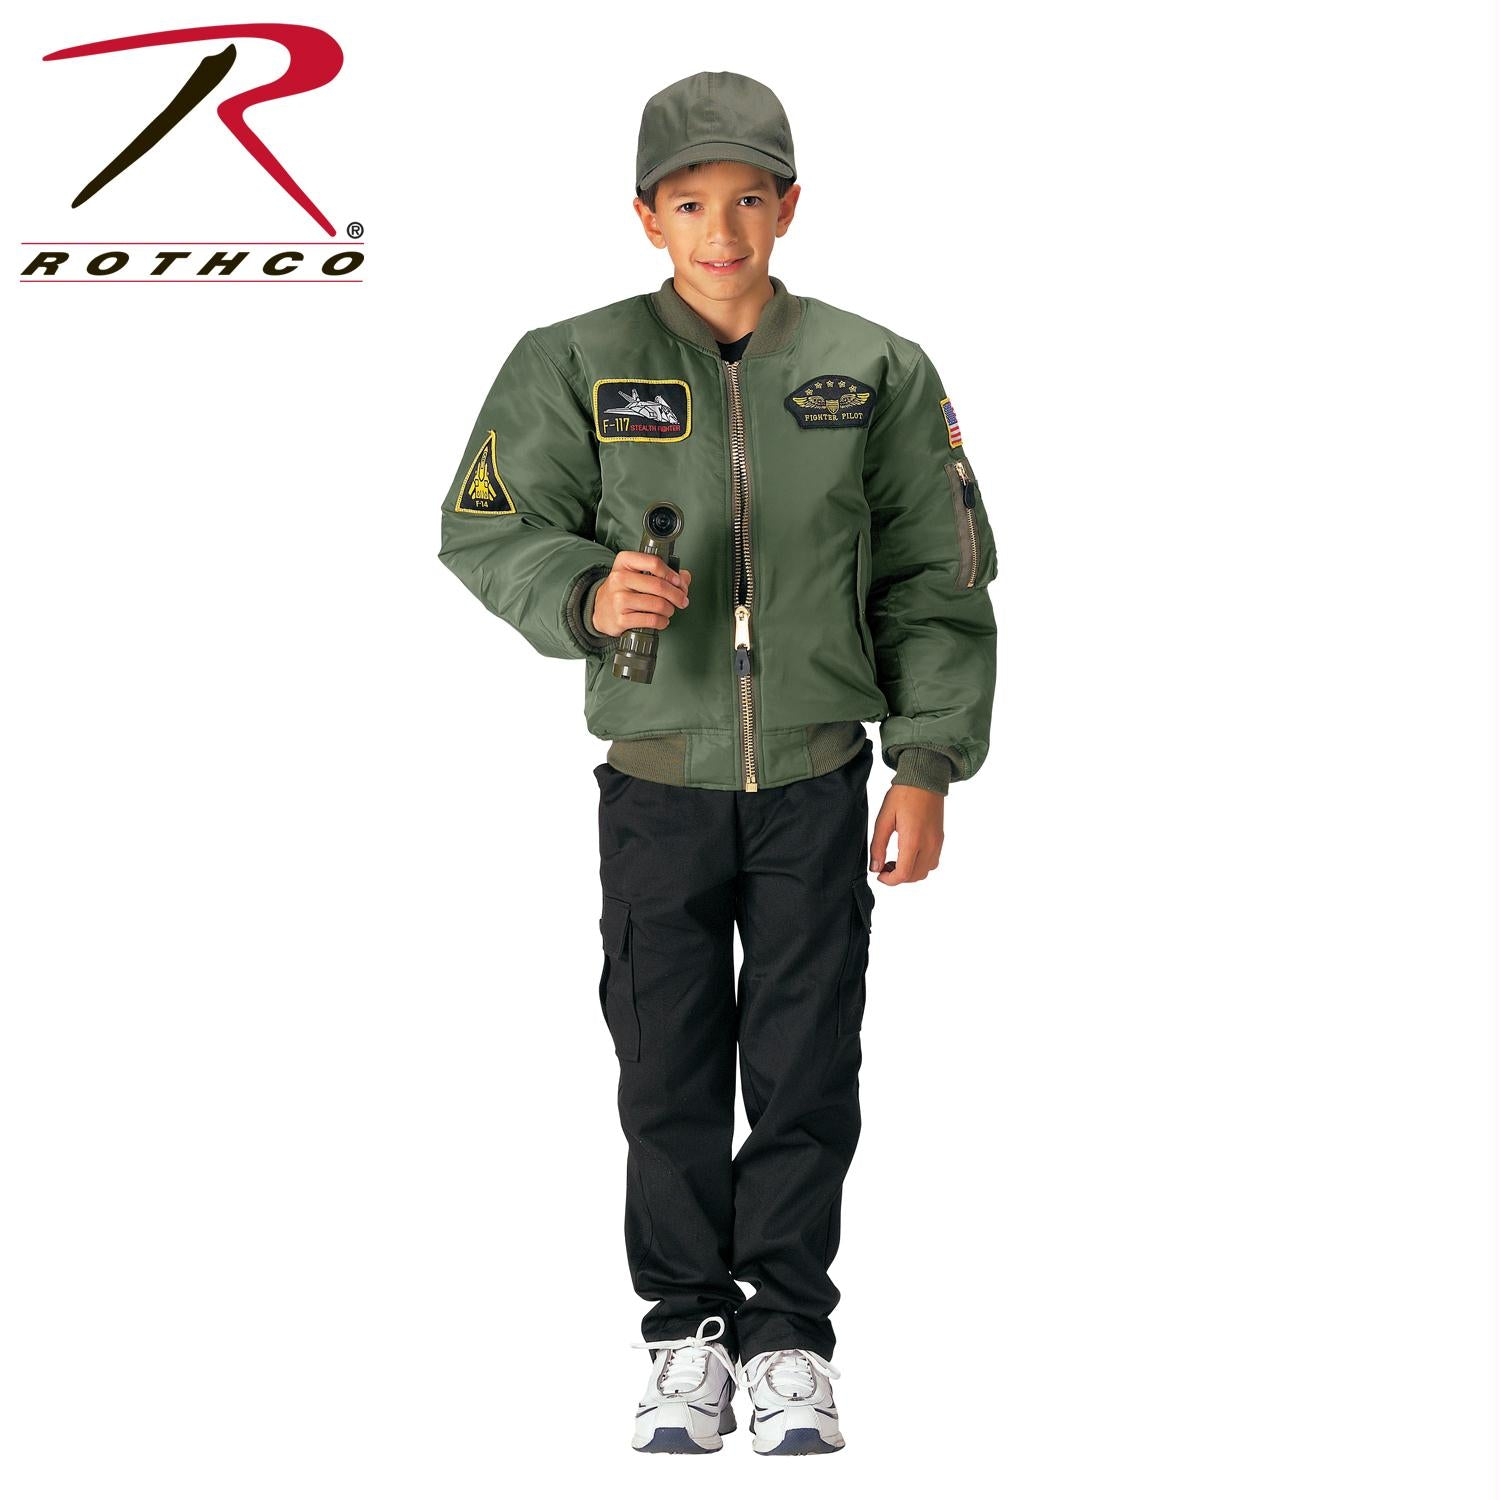 Rothco Kids Flight Jacket With Patches - Sage Green / XS